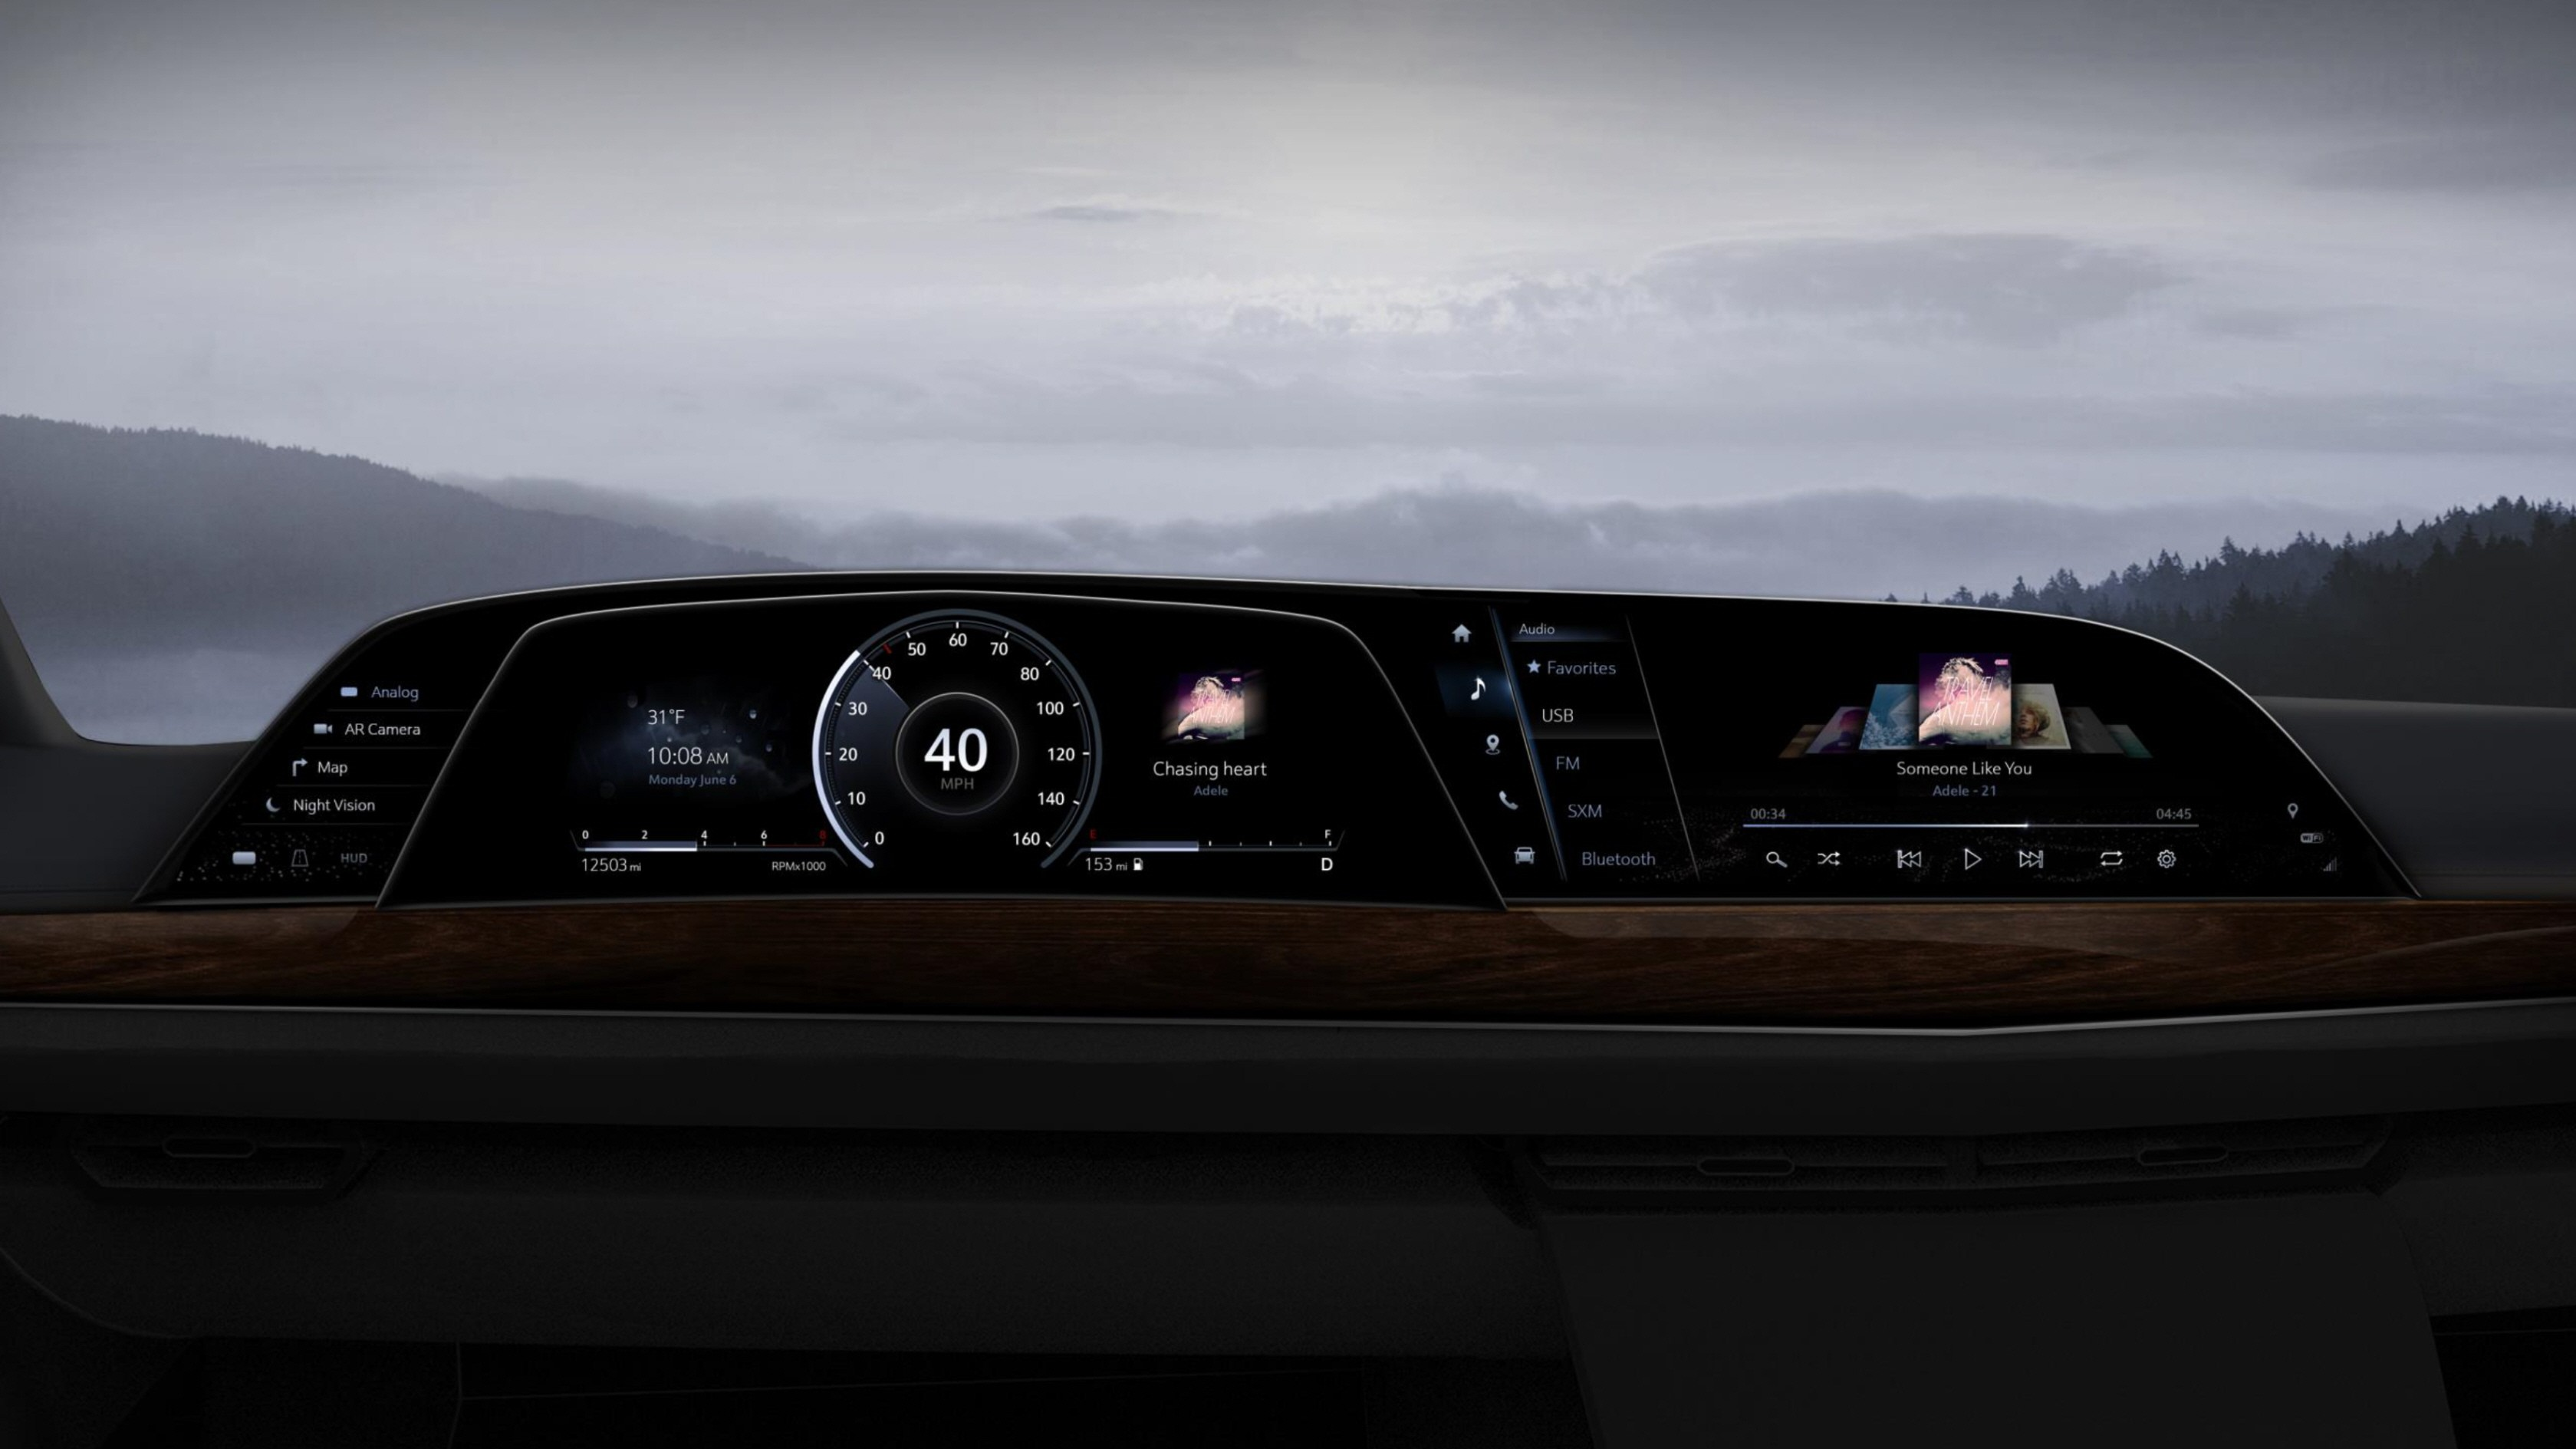 P-OLED cockpit from LG debuts in new 2021 Cadillac Escalade